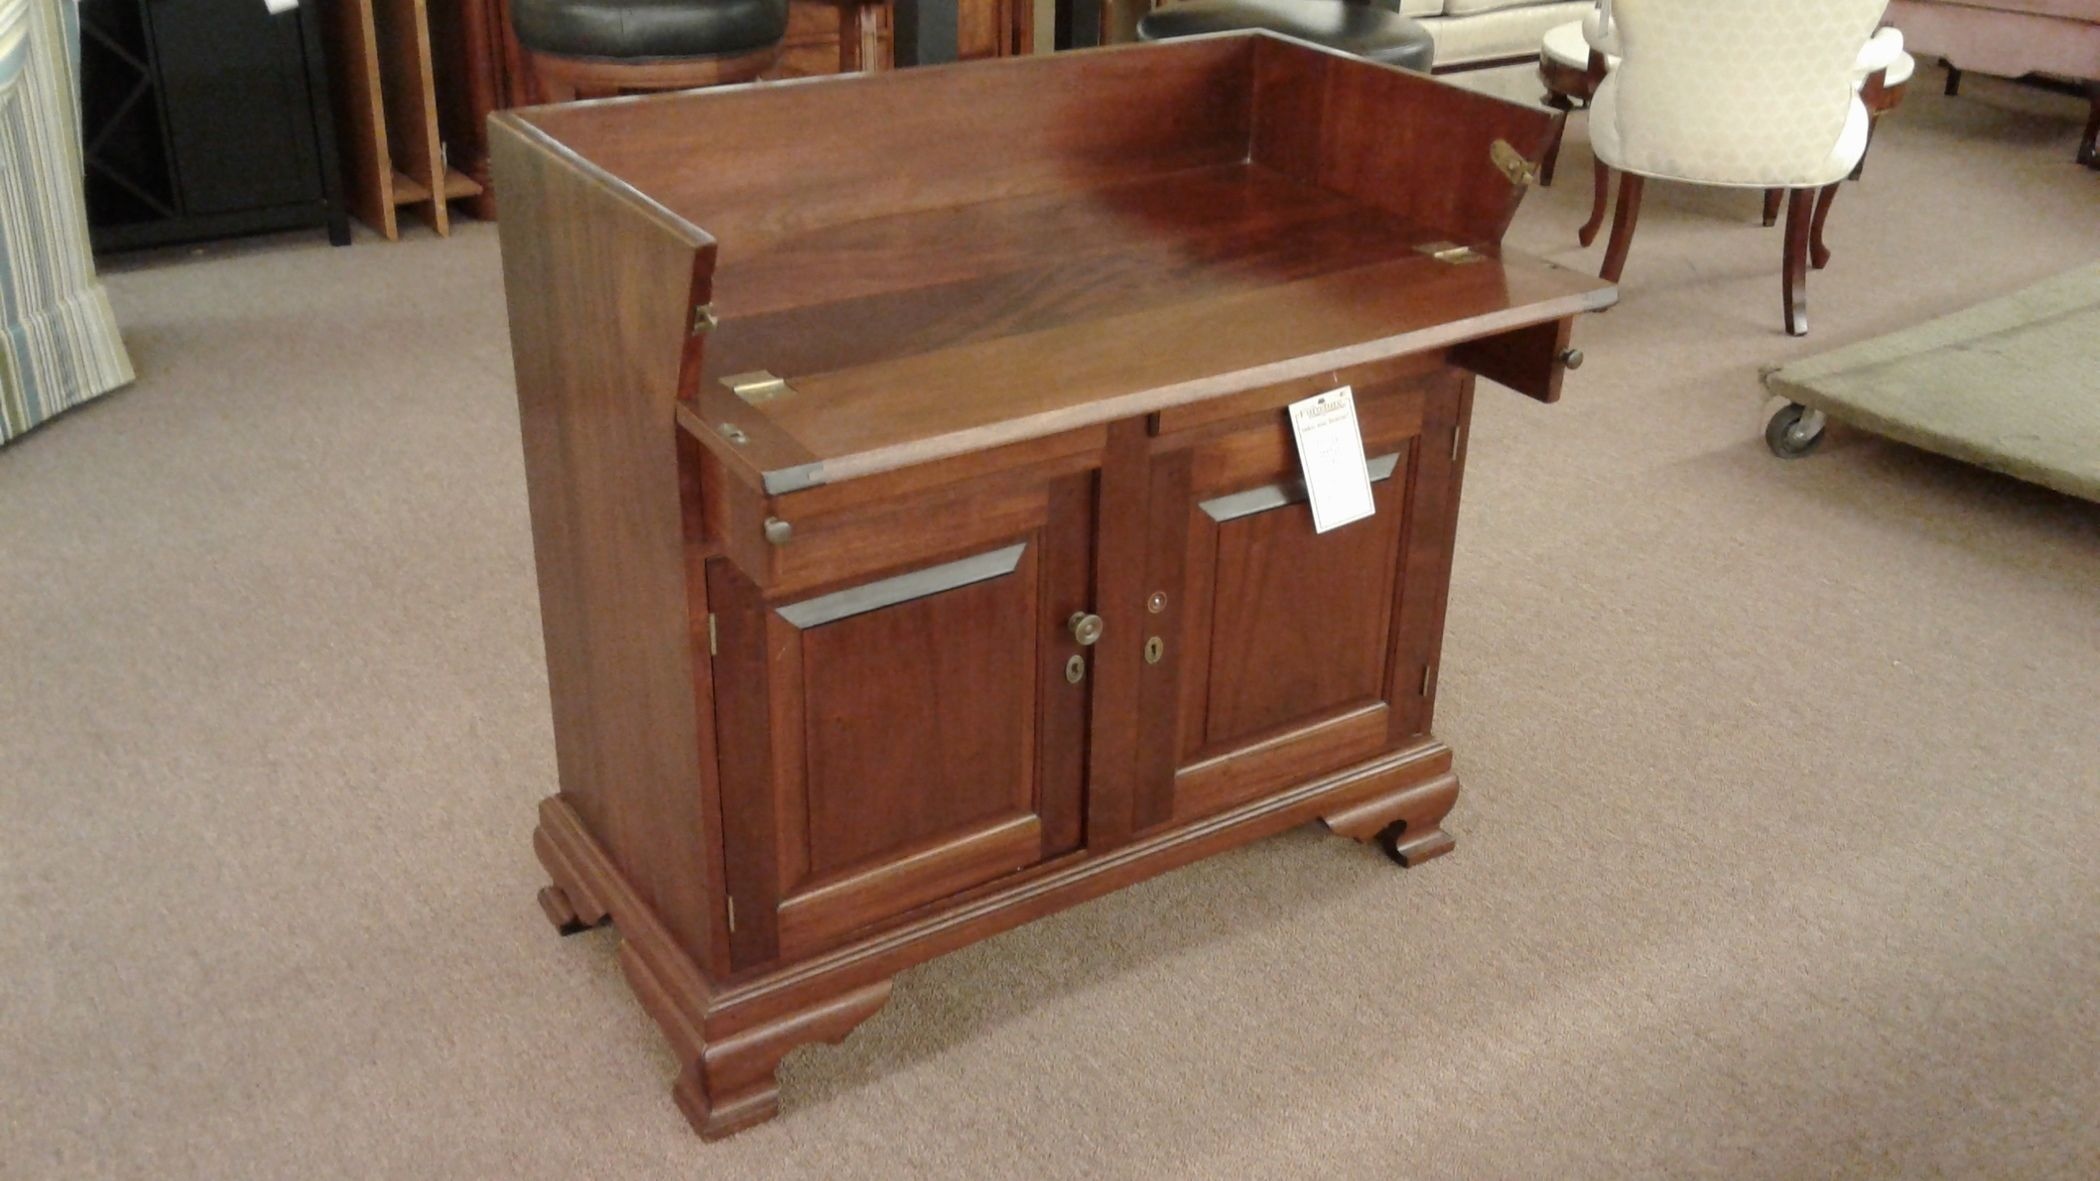 CHERRY DRY SINK Delmarva Furniture Consignment : large14795982897761343195399 from www.delmarvaconsignment.com size 2100 x 1181 jpeg 238kB